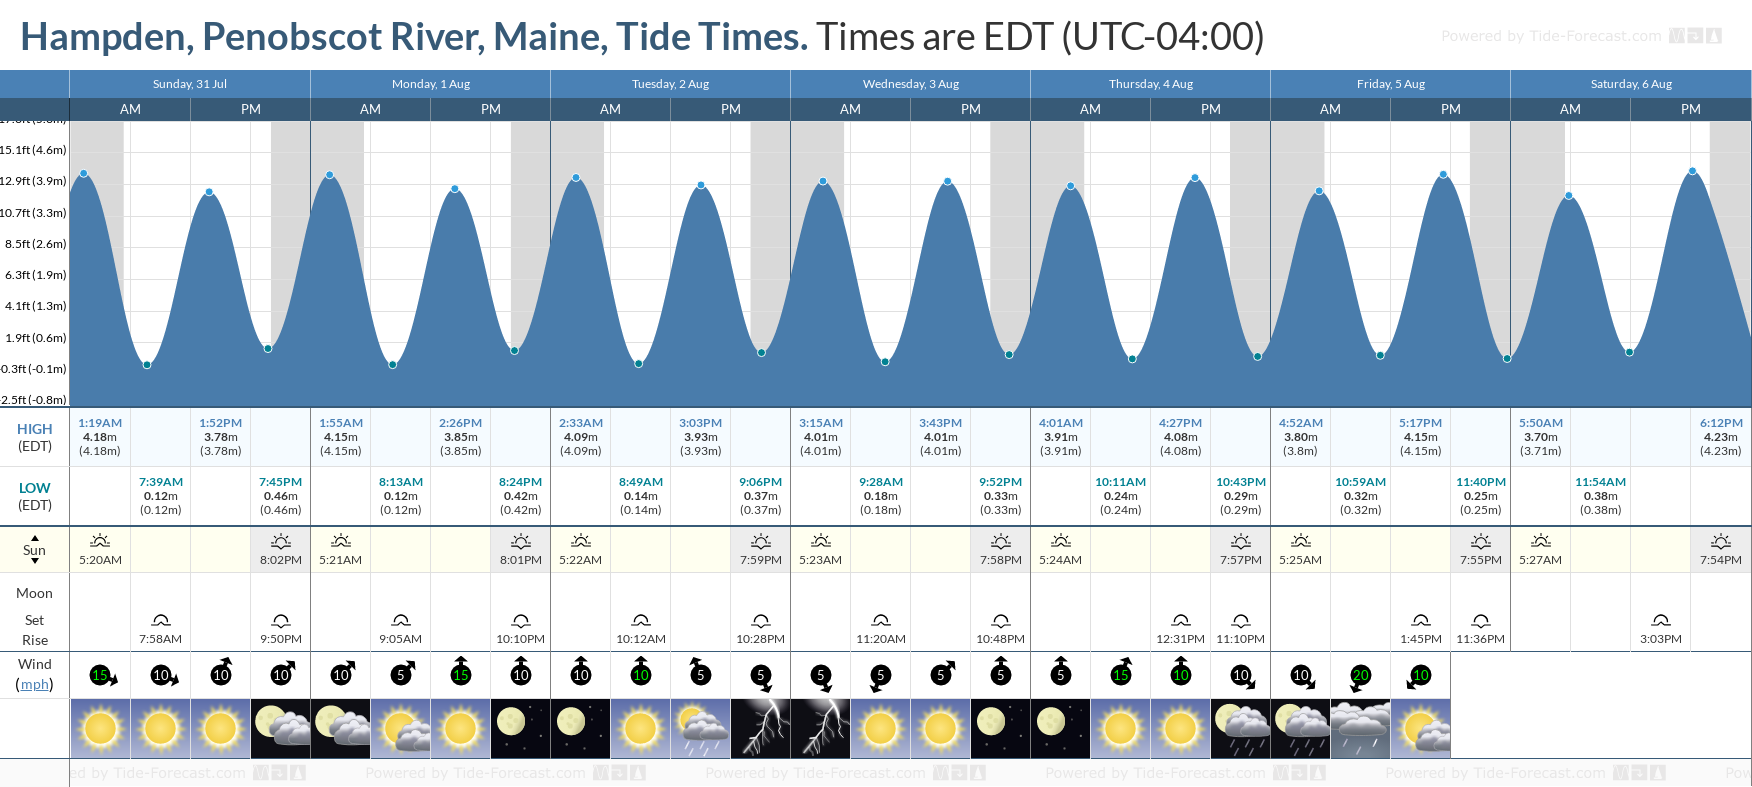 Hampden, Penobscot River, Maine Tide Chart including high and low tide tide times for the next 7 days